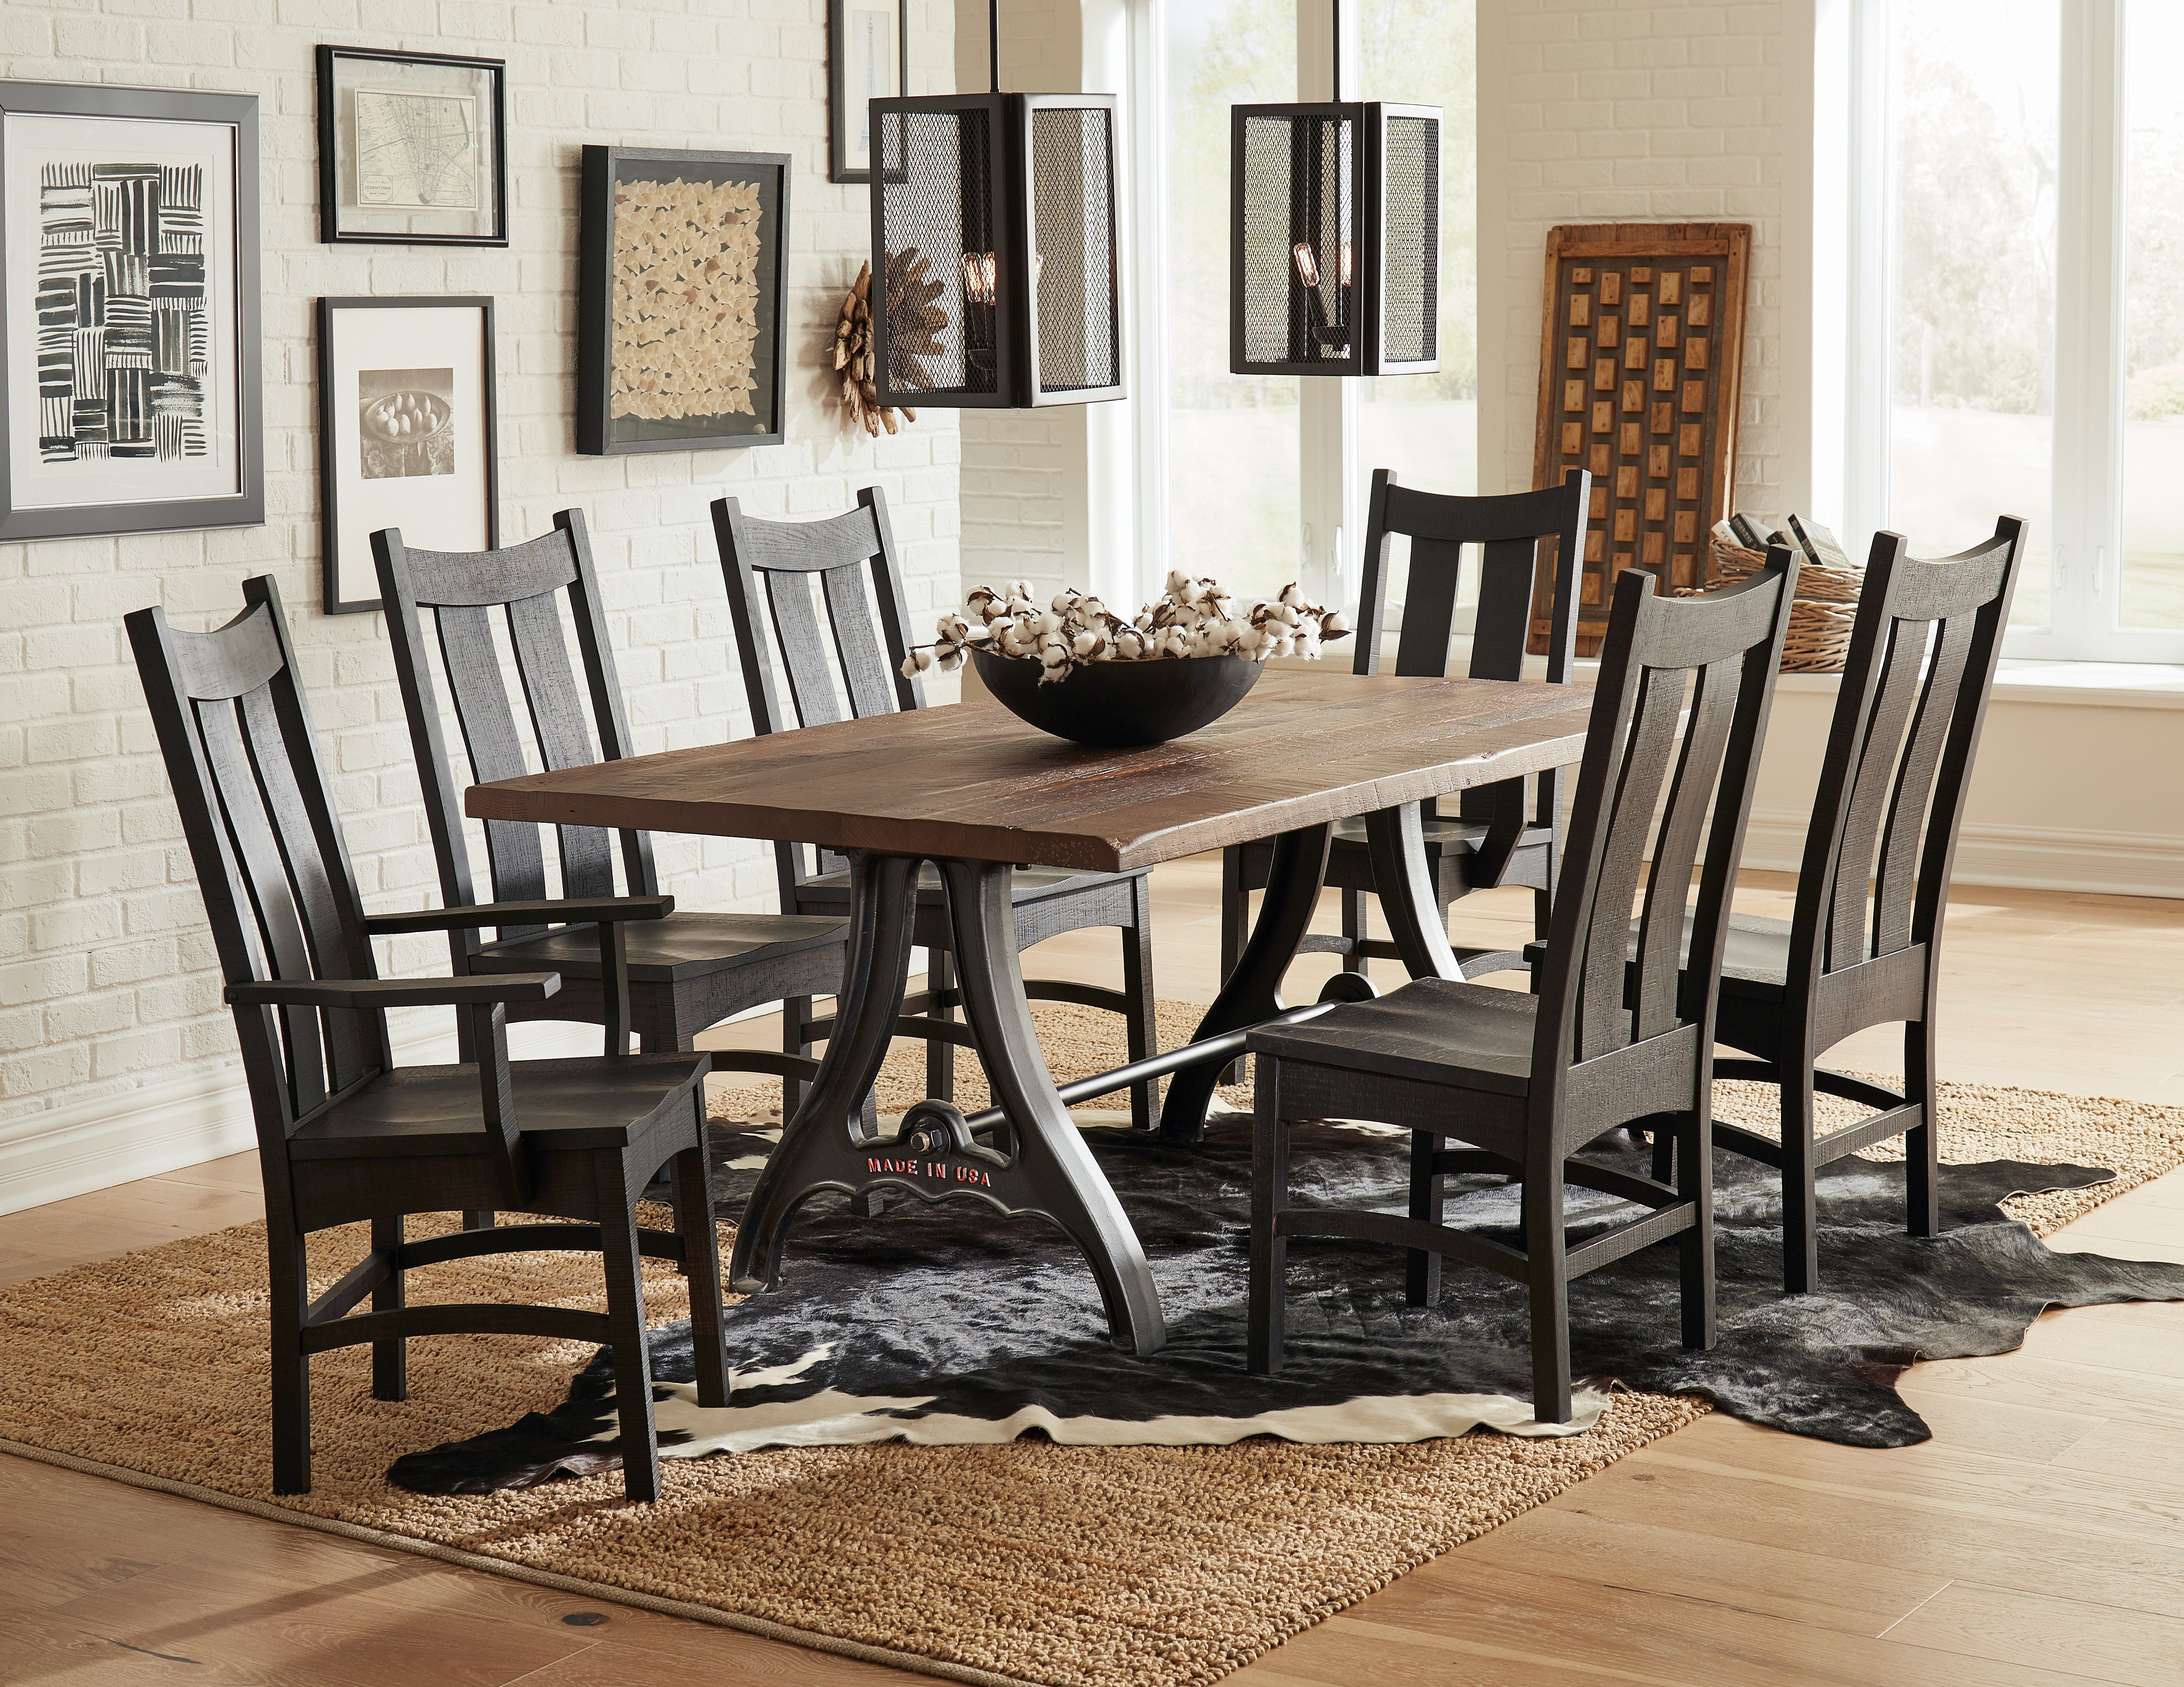 Country Shaker Dining, Shaker Dining Room Table And Chairs